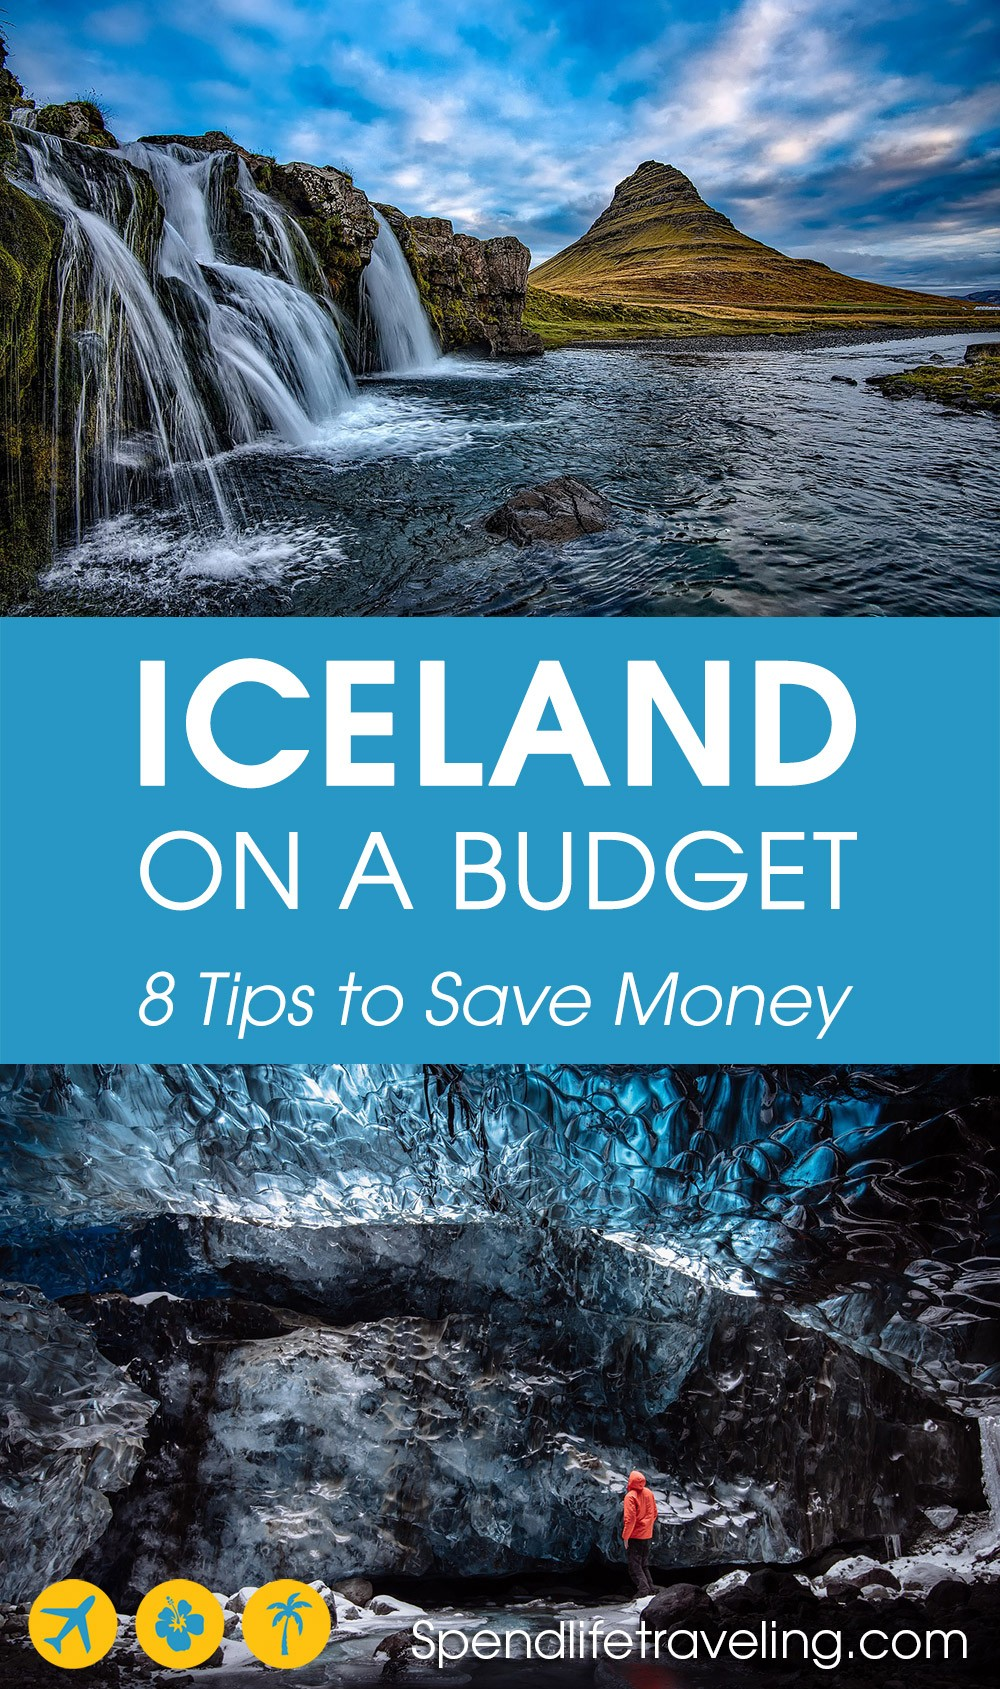 There are several ways to save money traveling around #Iceland, to make your trip a lot more affordable without missing out on anything. Check out these 8 practical tips. #traveltips #budgettravel #cheaptravel #northernlights #travelIceland